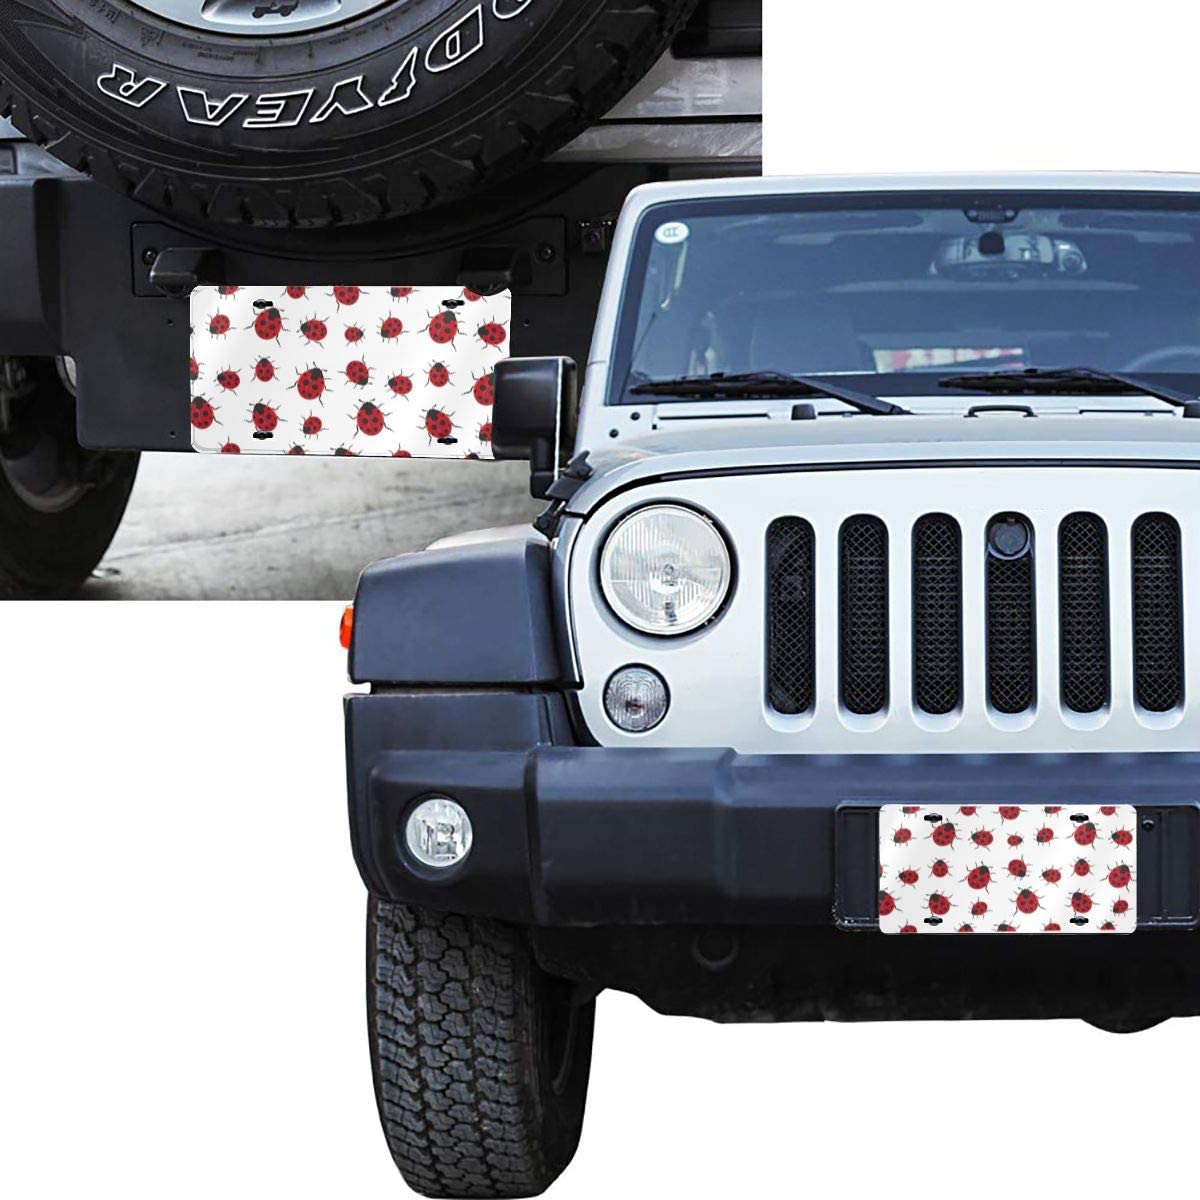 DKKFJC Front License Plate Covers Ladybug Pattern Novelty Auto Car Tag Vanity Gift Decoration